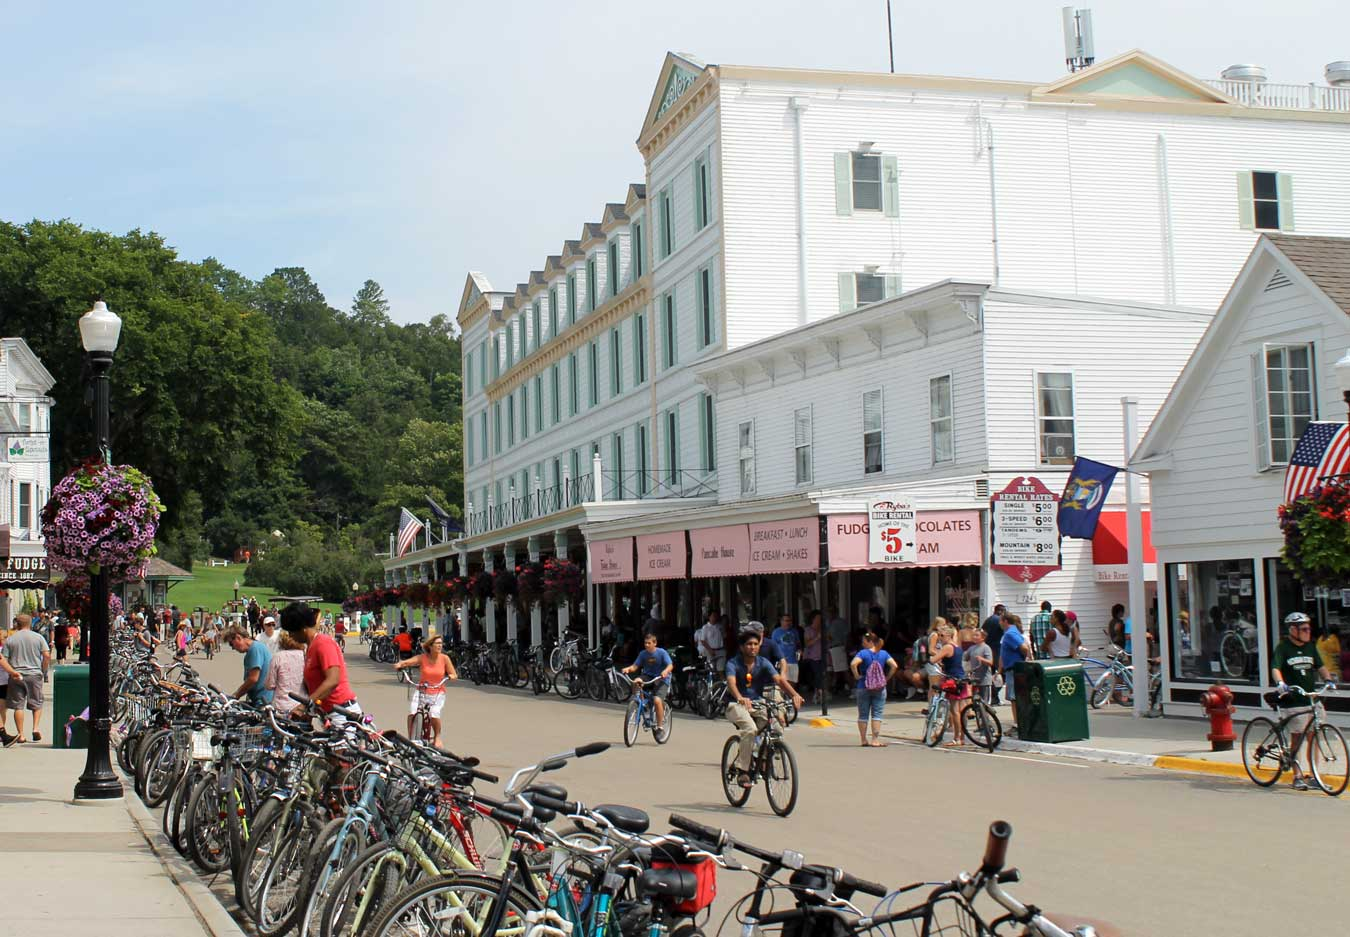 Wading In Big Shoes: 11 Things You Should Know Before Visiting Mackinac Island